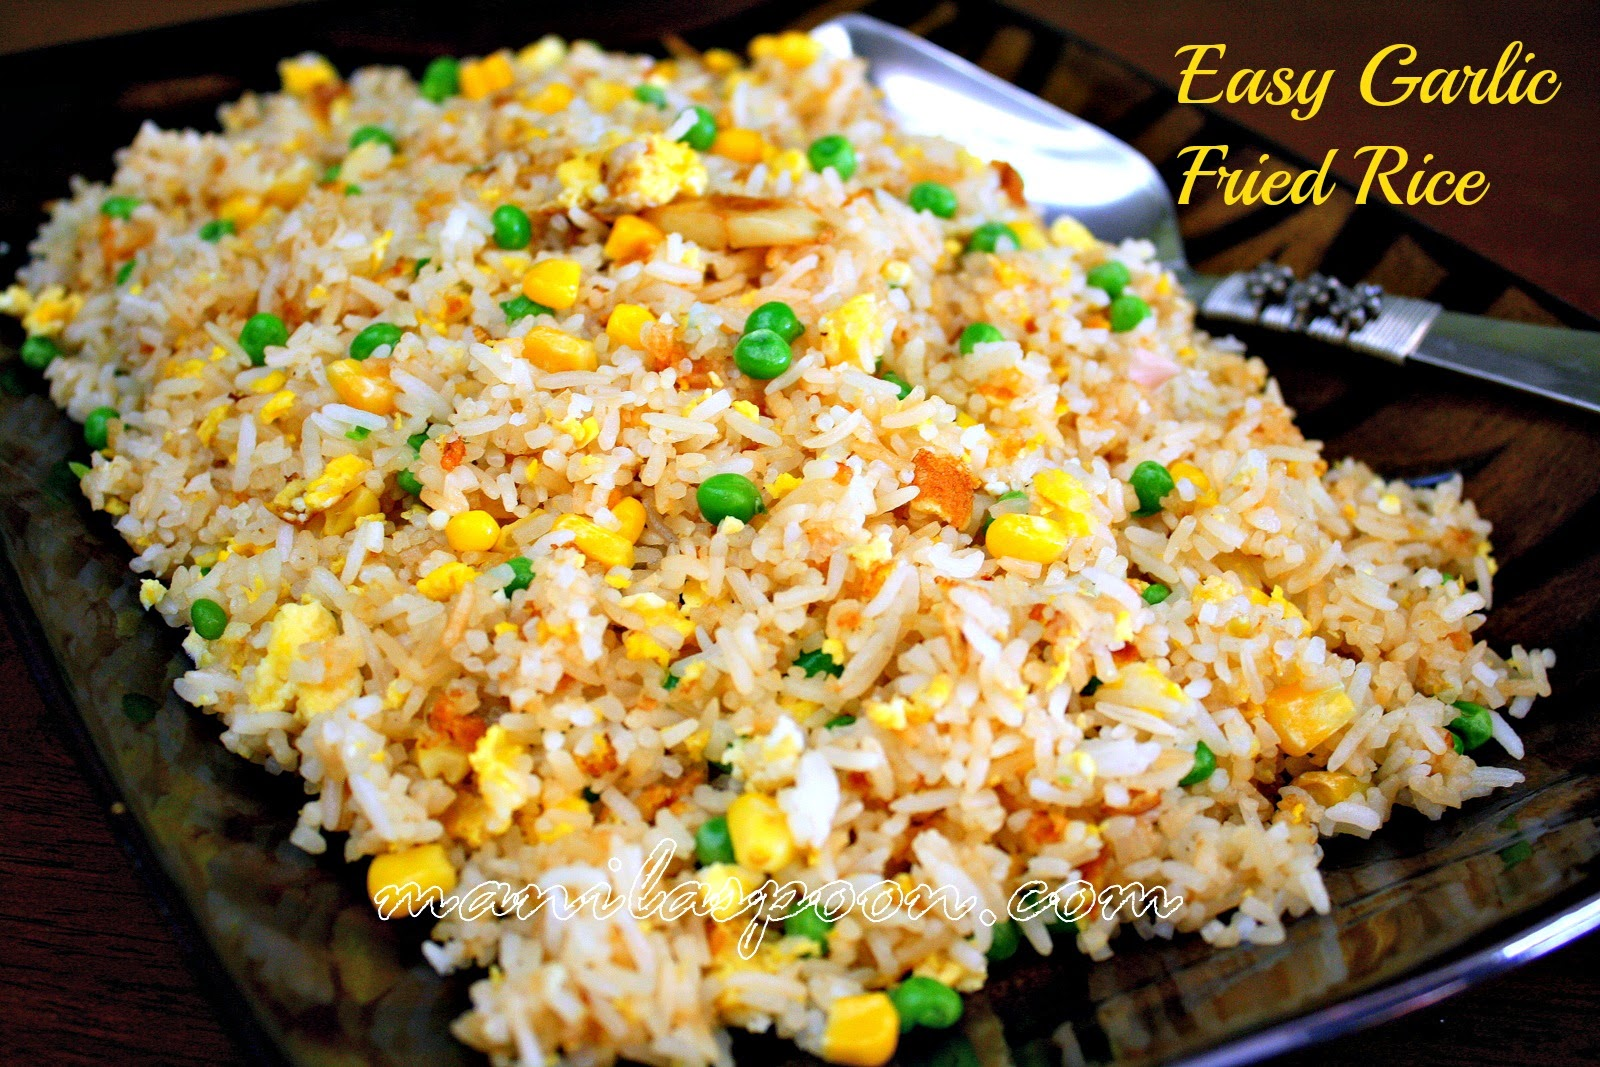 No need to throw left-over rice when you can make this easy, tasty and versatile garlic fried rice. Tried and tested!